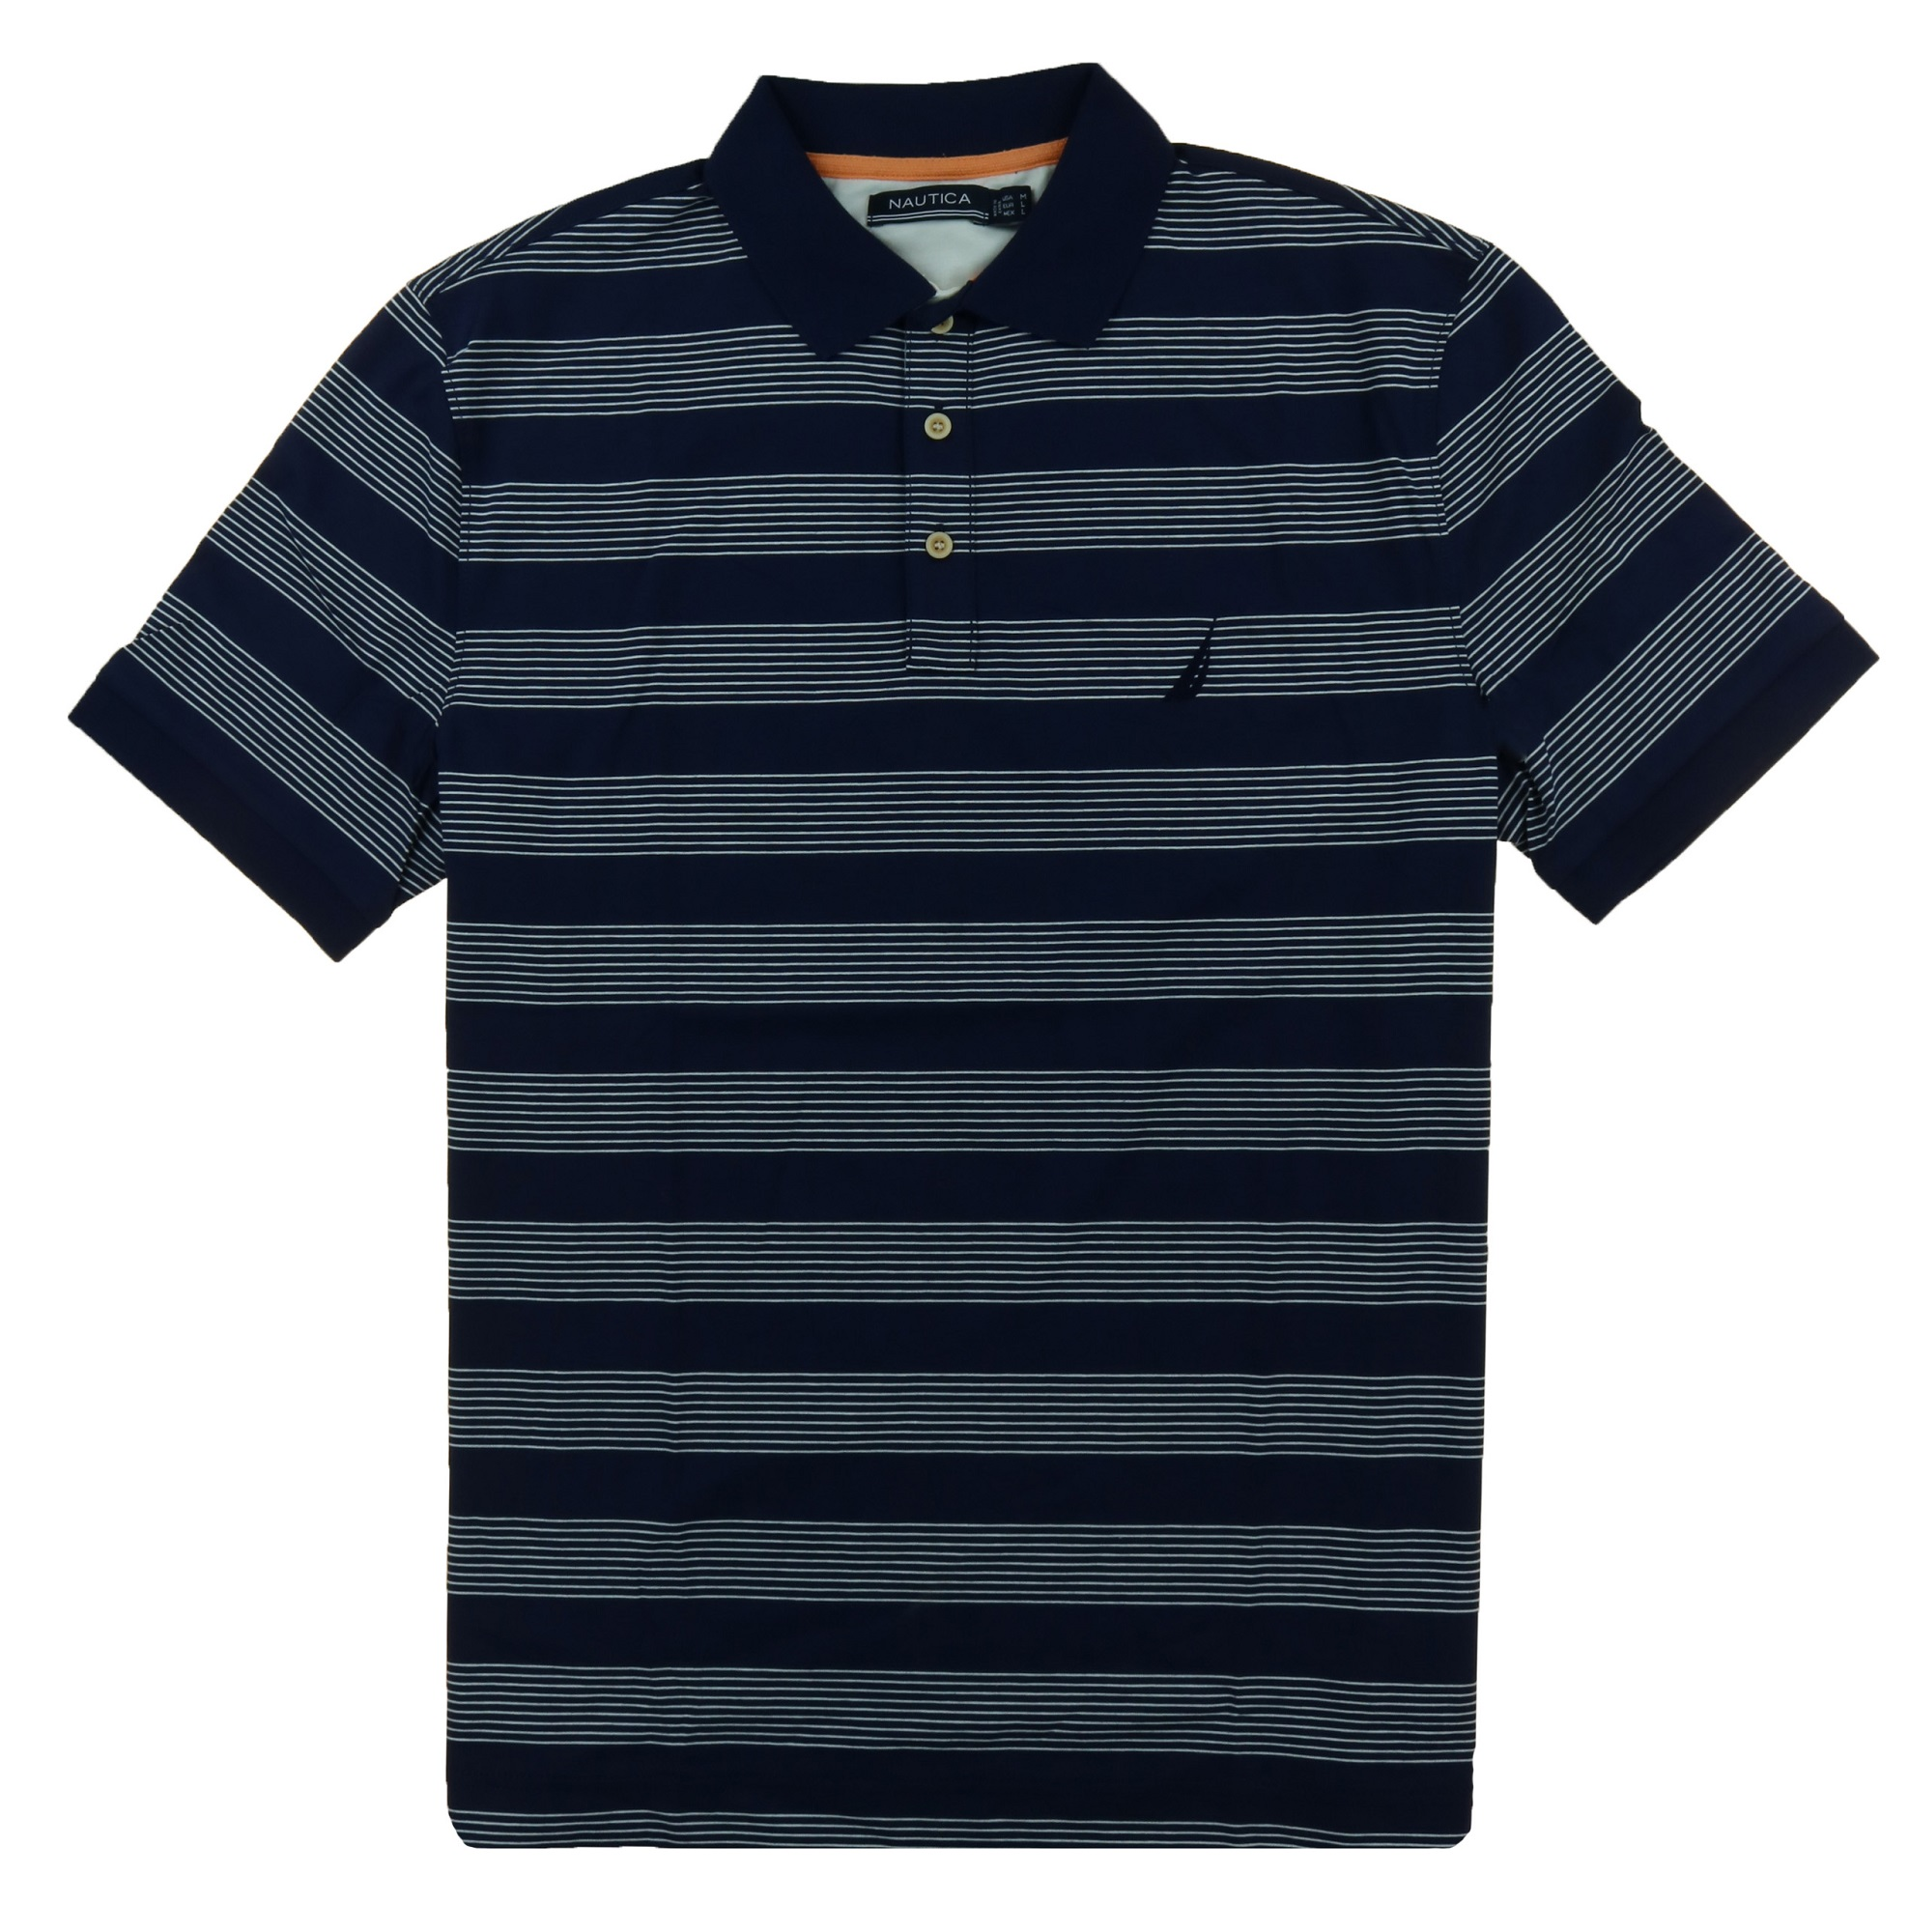 Nautica Mens' Short Sleeve Cotton Polo (Color: Peacoat, Size Medium)